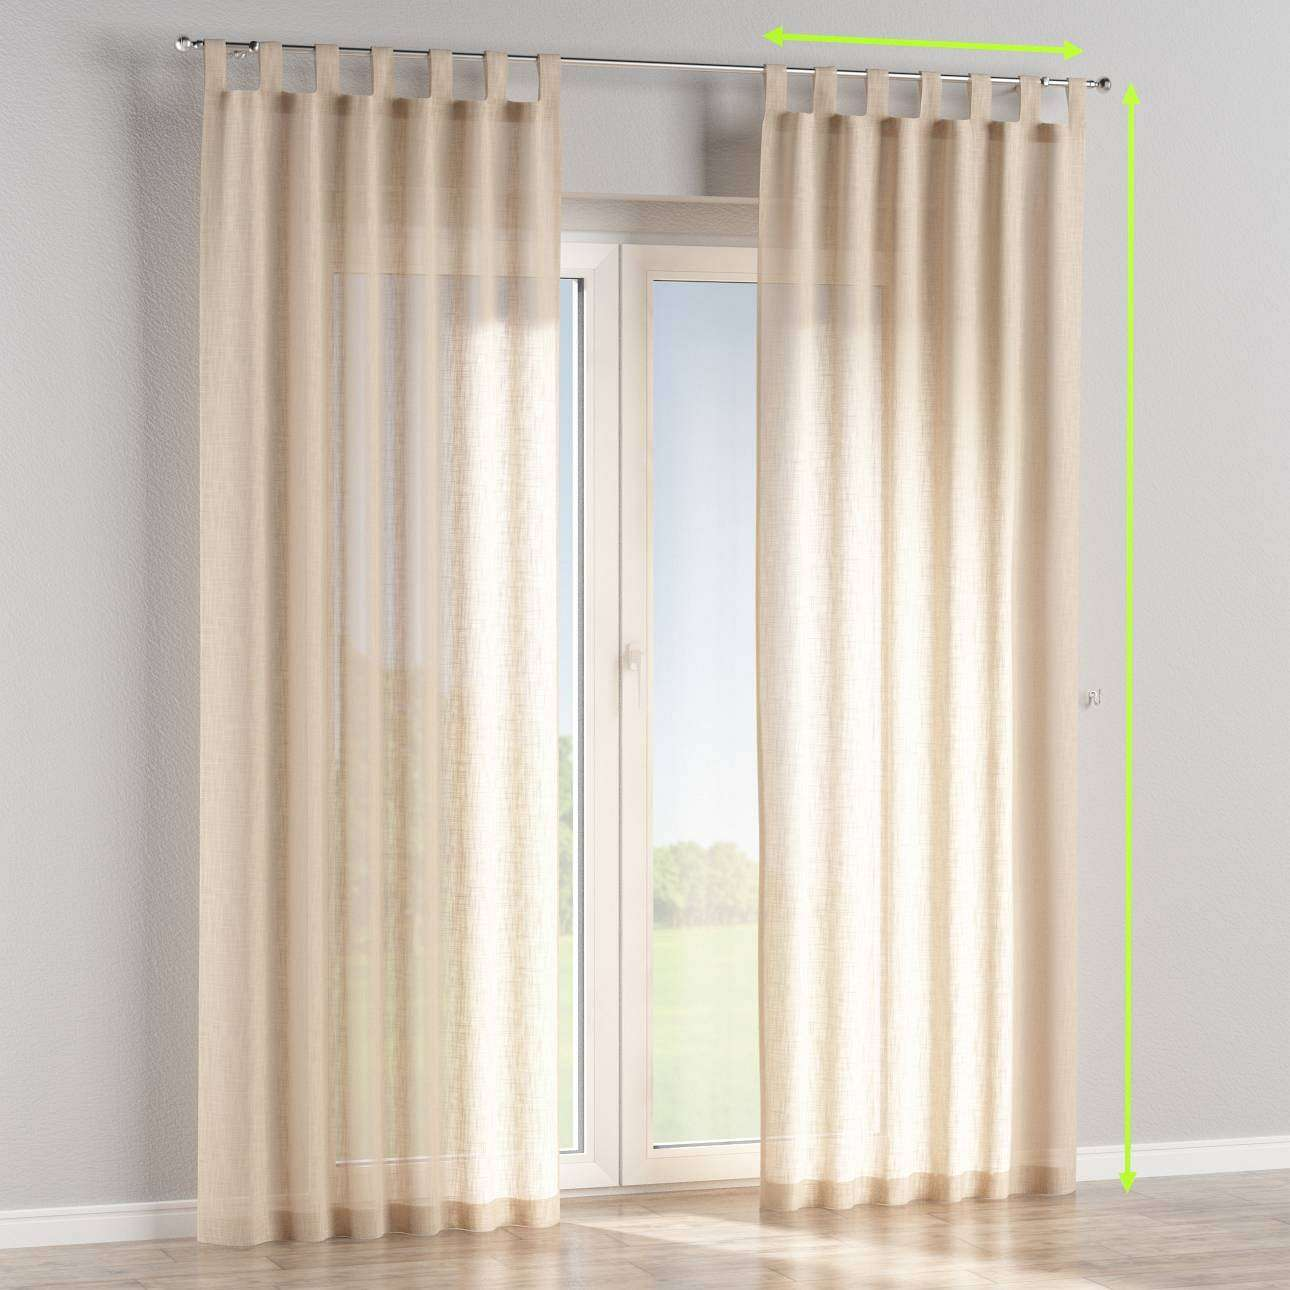 Tab top curtains in collection Romantica, fabric: 128-01